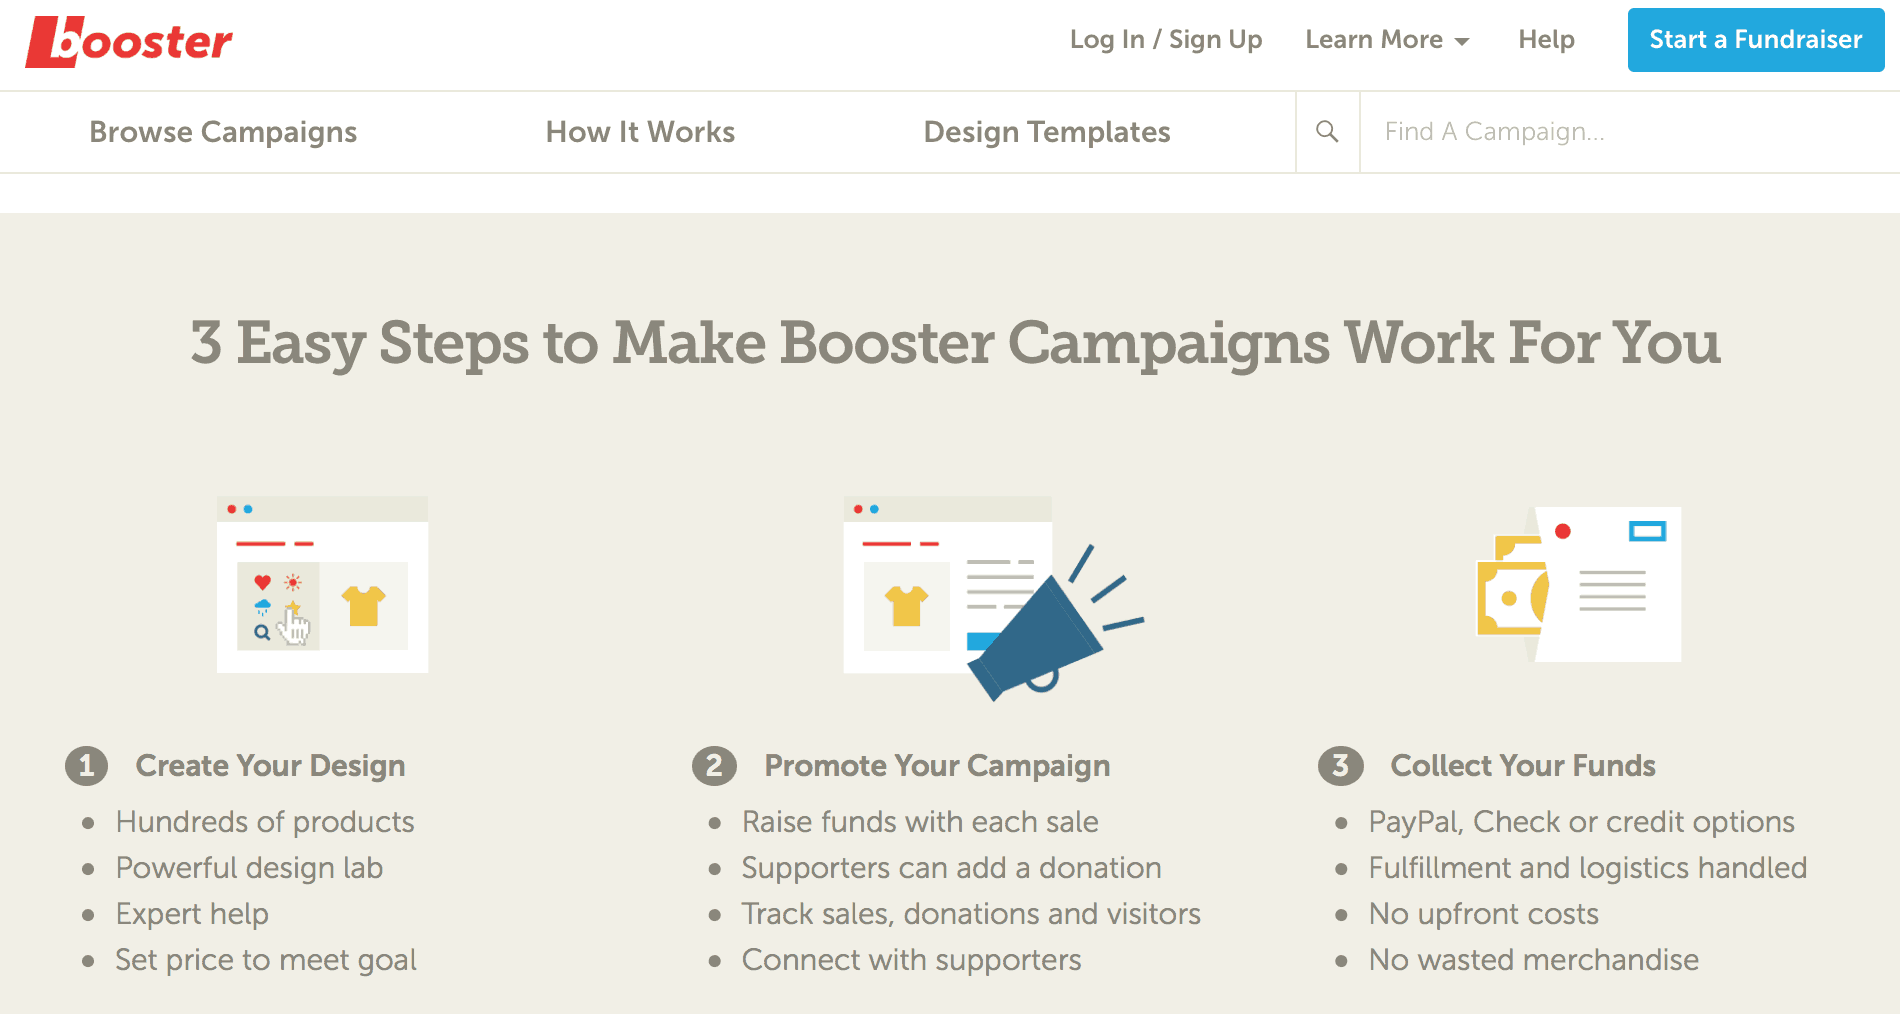 How Booster Fundraising Works